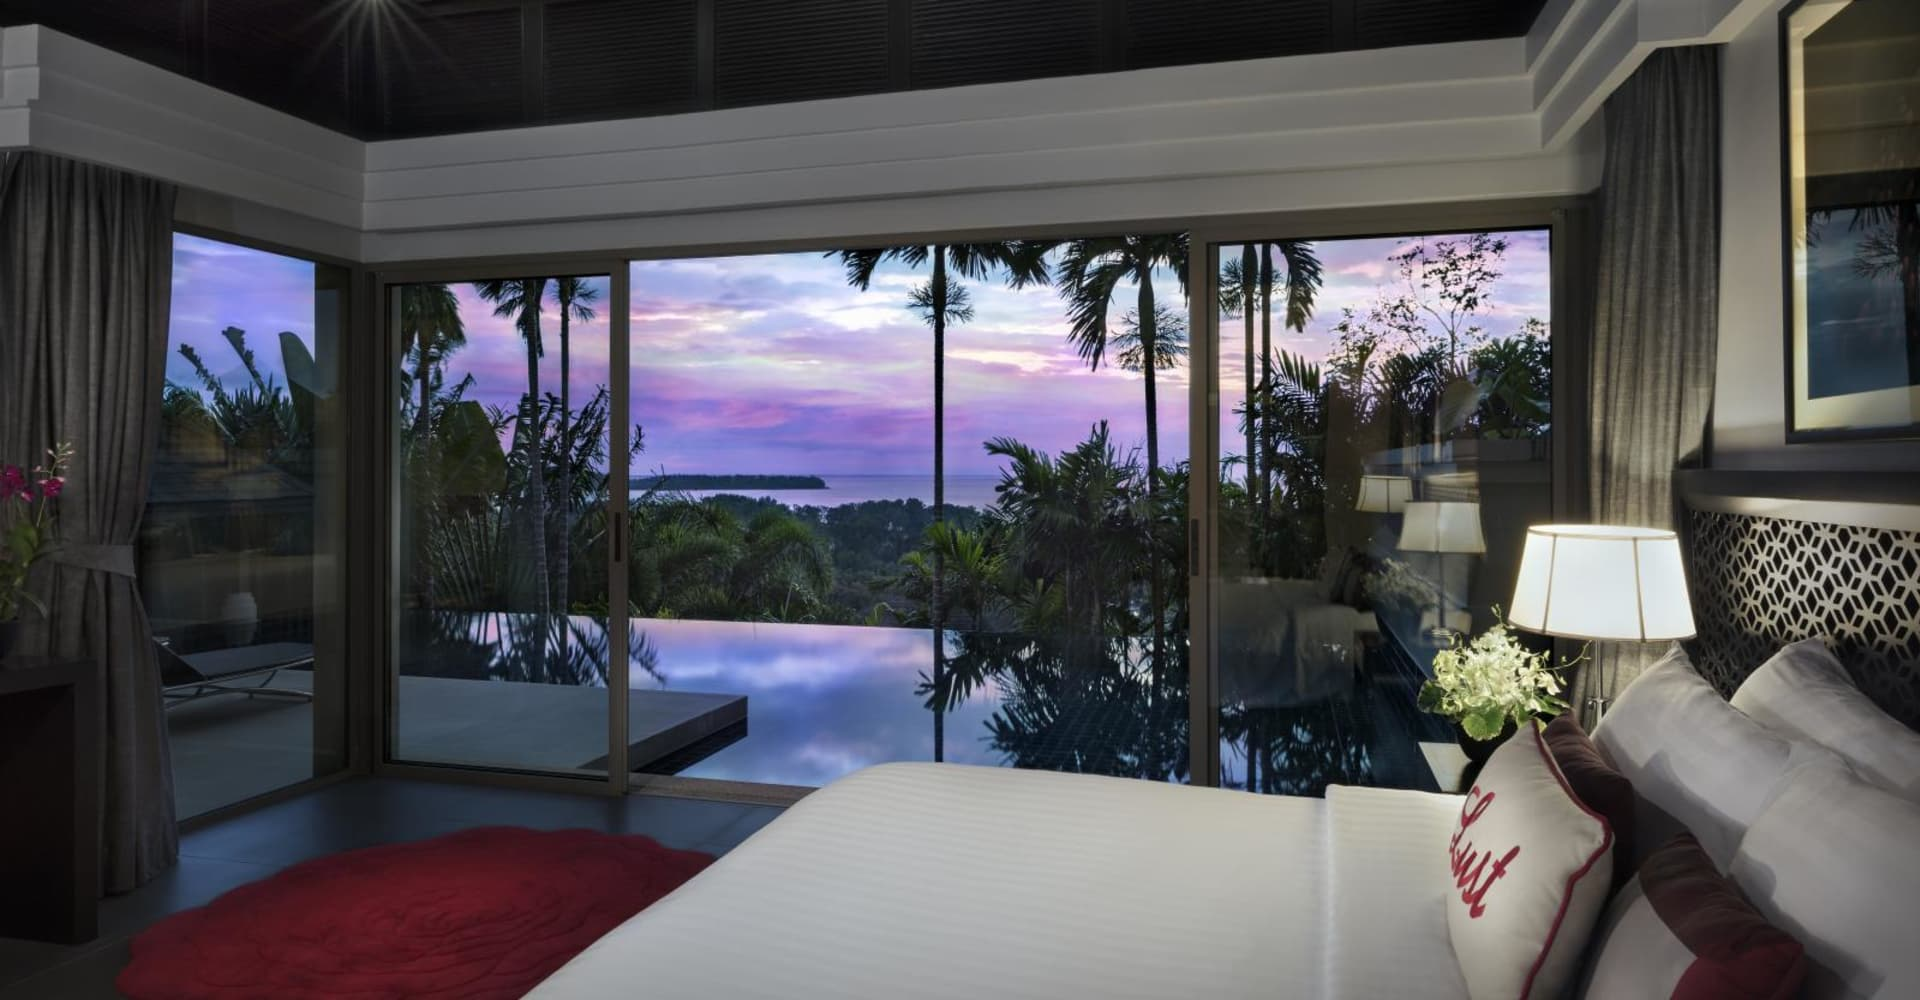 Romance Destination - The Pavilions Phuket